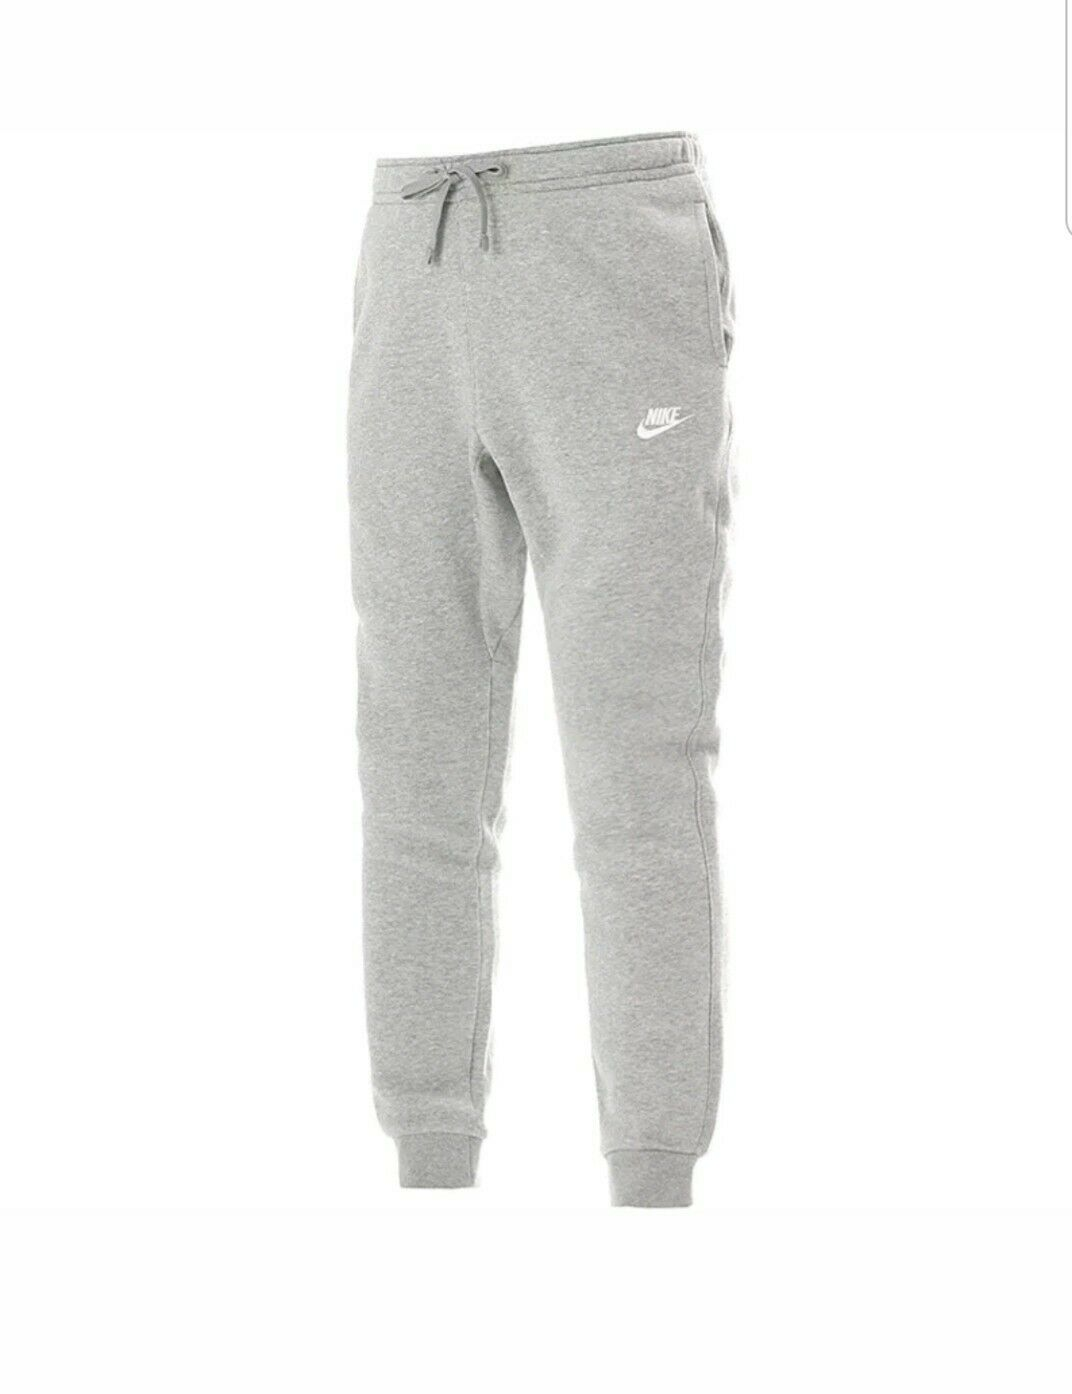 NIKE Mens Sportswear  Jogger Grey Heather White 804408-063 Size 4Xlarge  the best online store offer